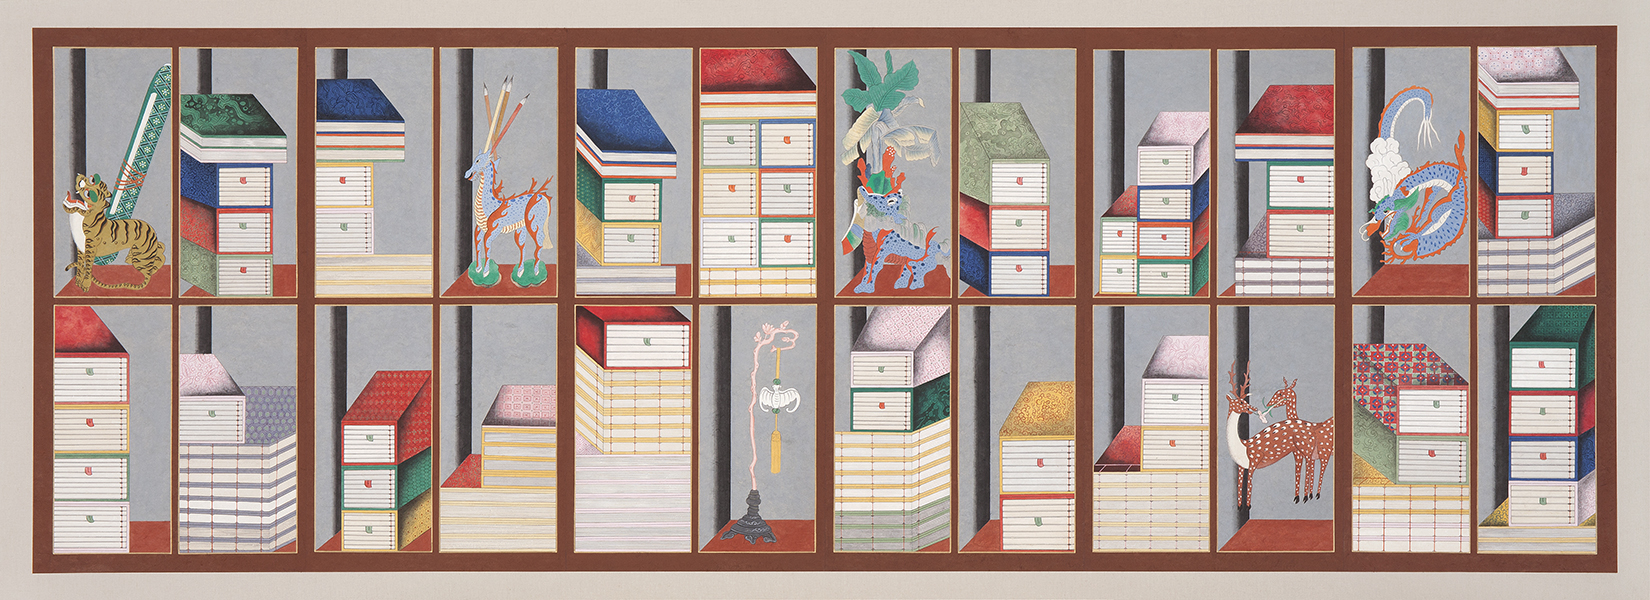 Scholar's Accoutrements(Chaekgado), 2016, Color on Korean paper, (41.1 x 82.5 cm) x 6panels